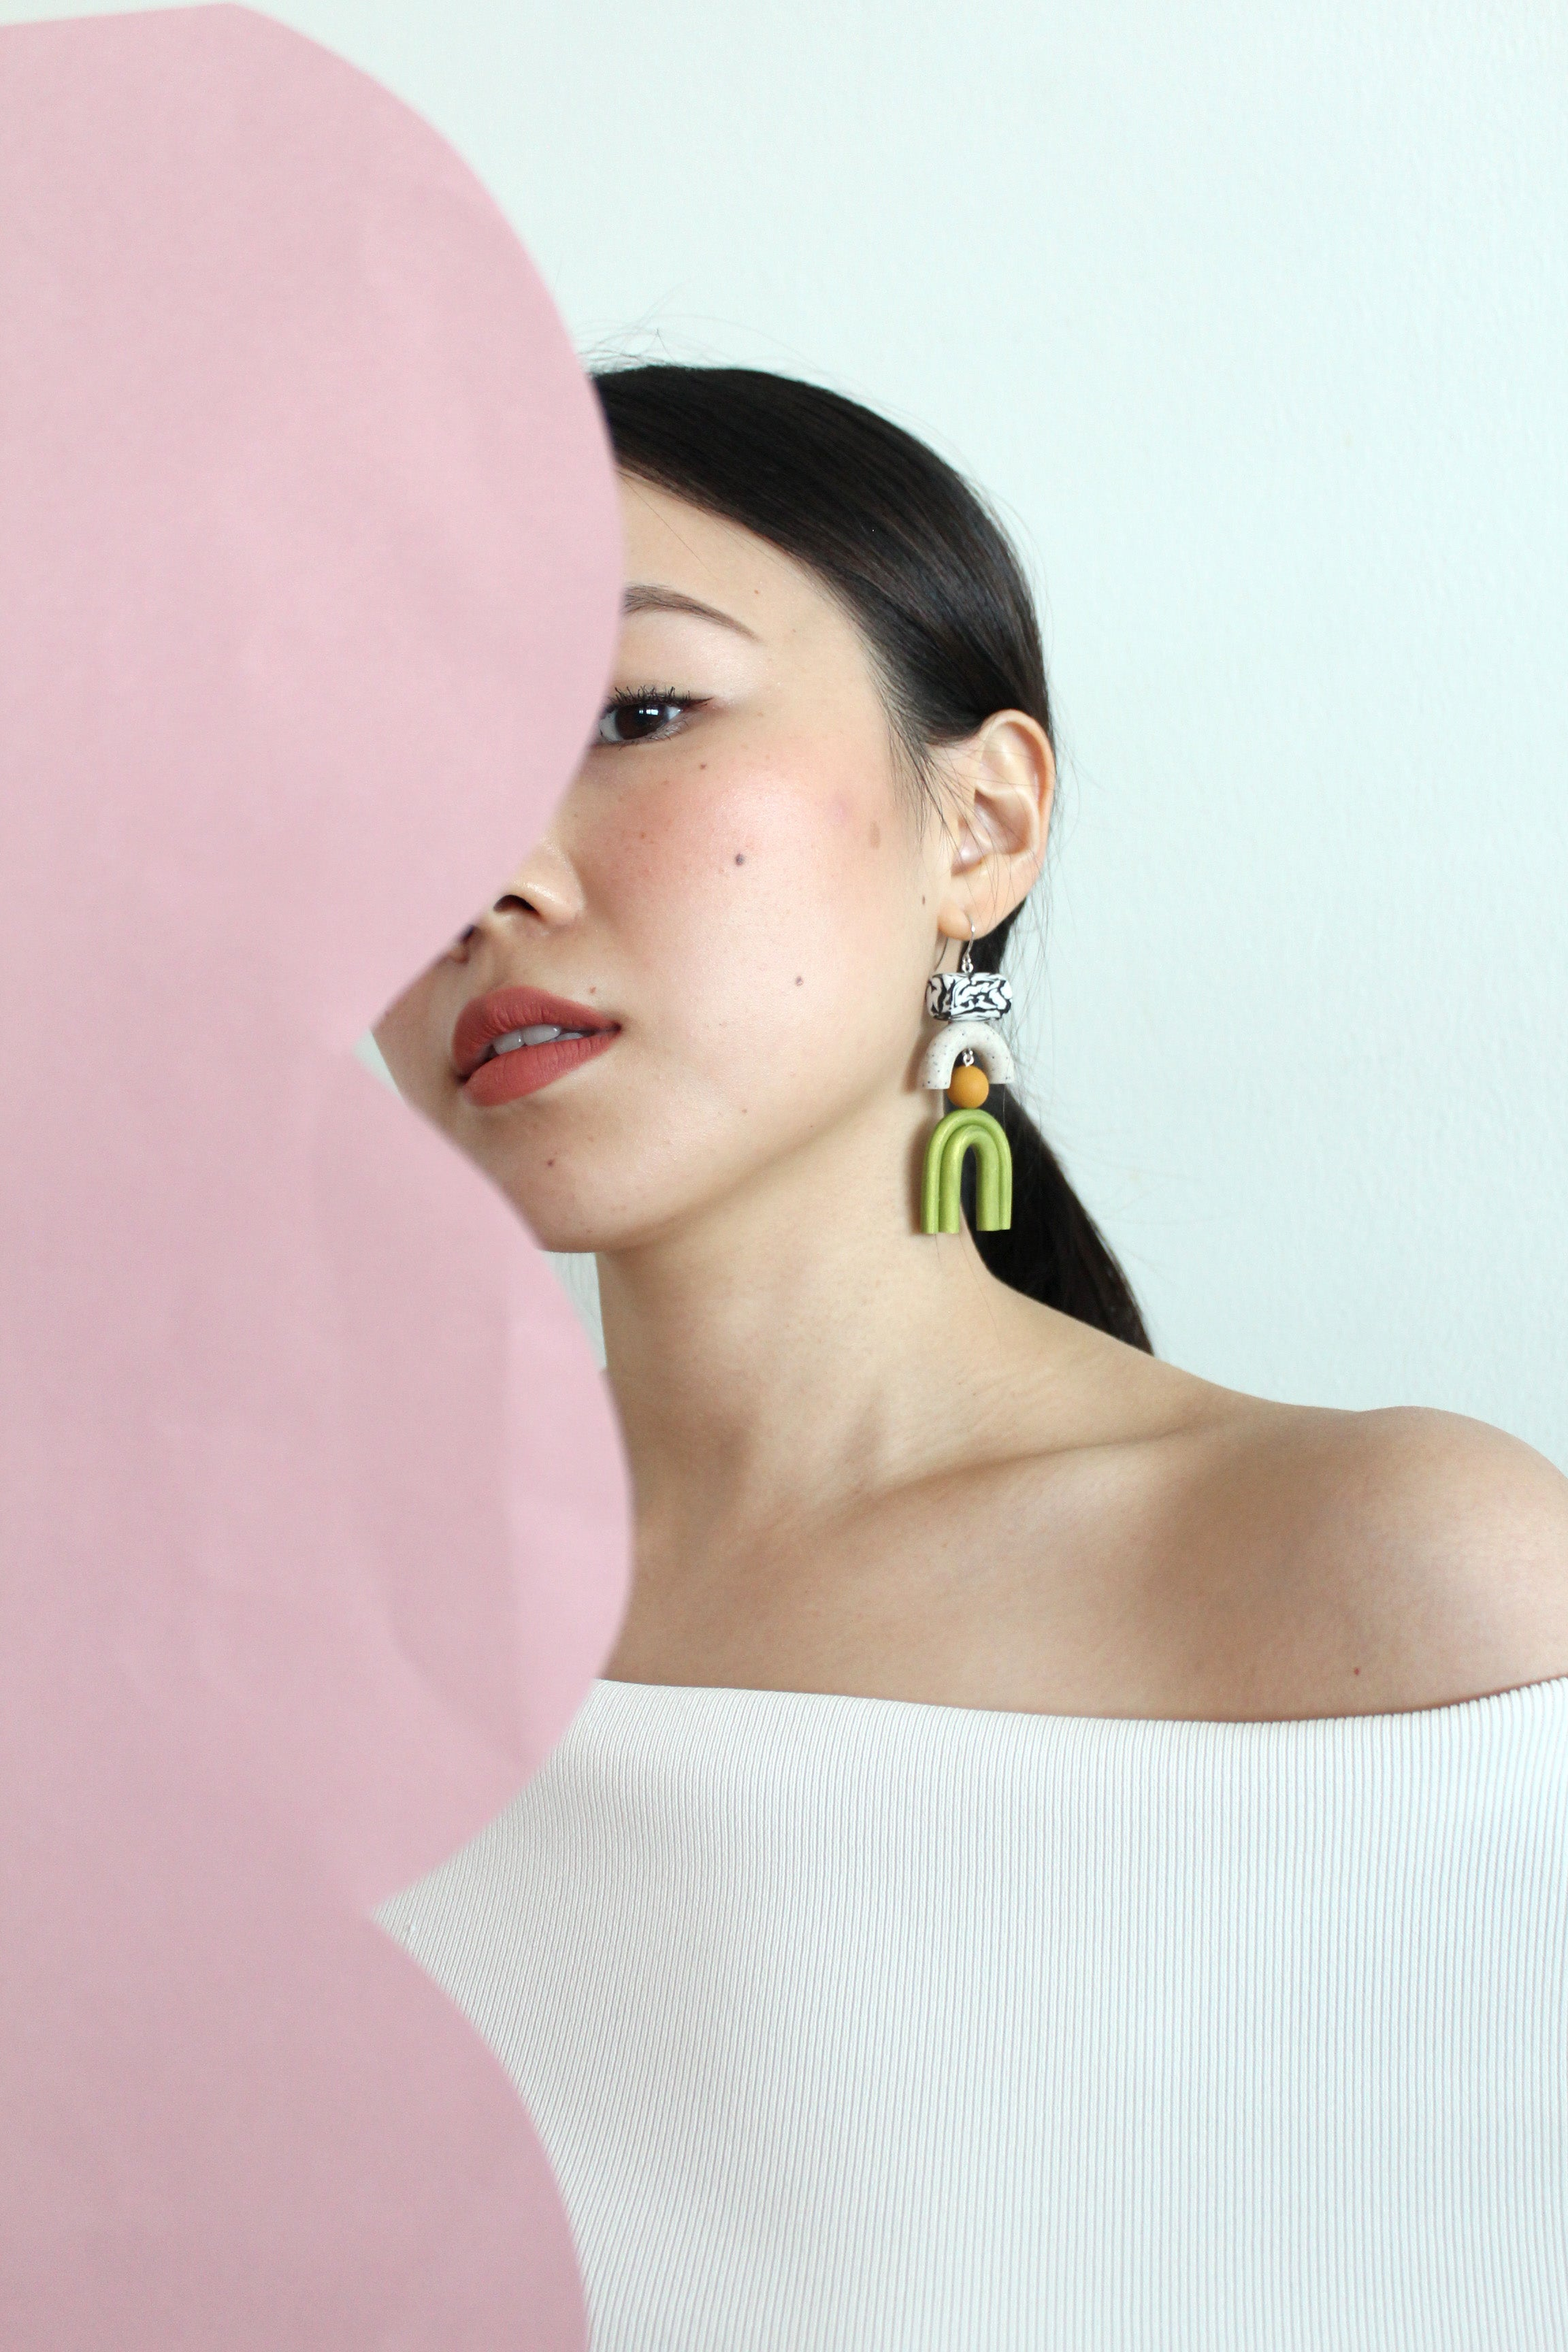 Tsunja asymmetrical geometric earrings made of polymer clay, Bowie earrings in green with silver hook